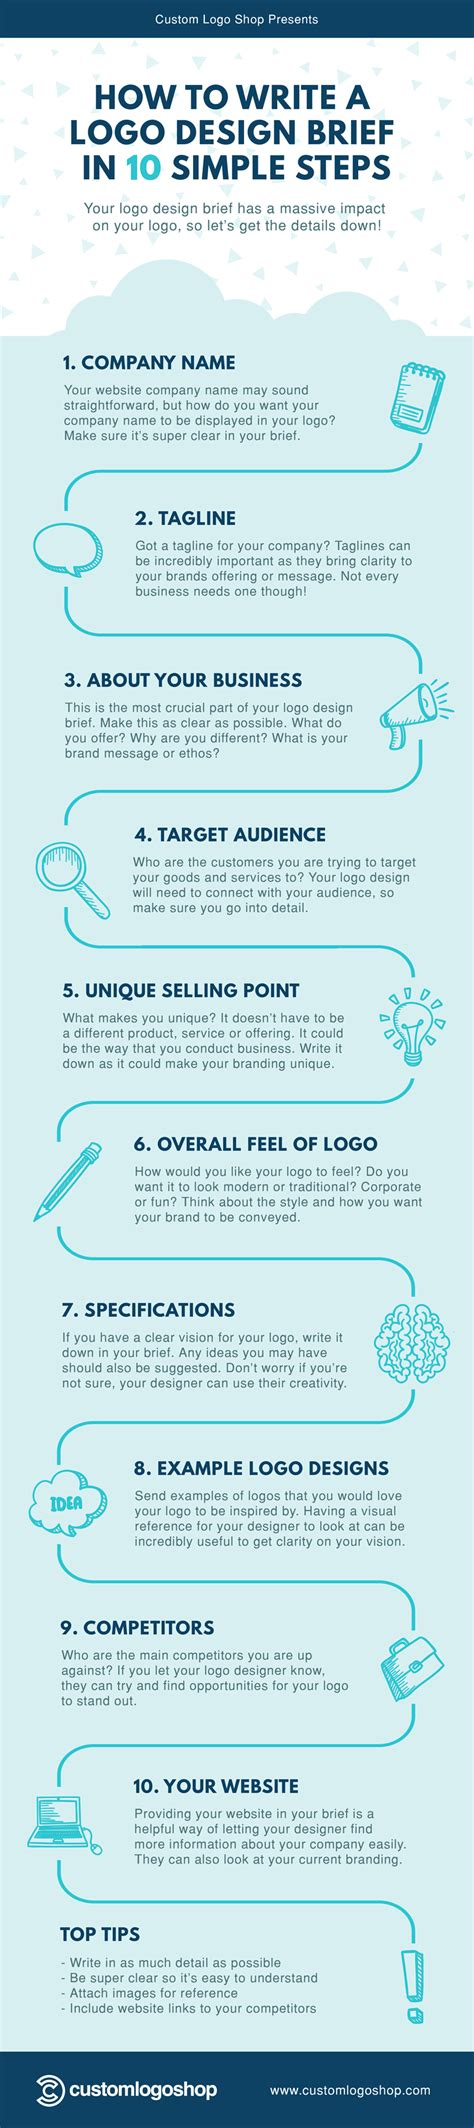 design brief infographic how to write a logo design brief in 10 simple steps